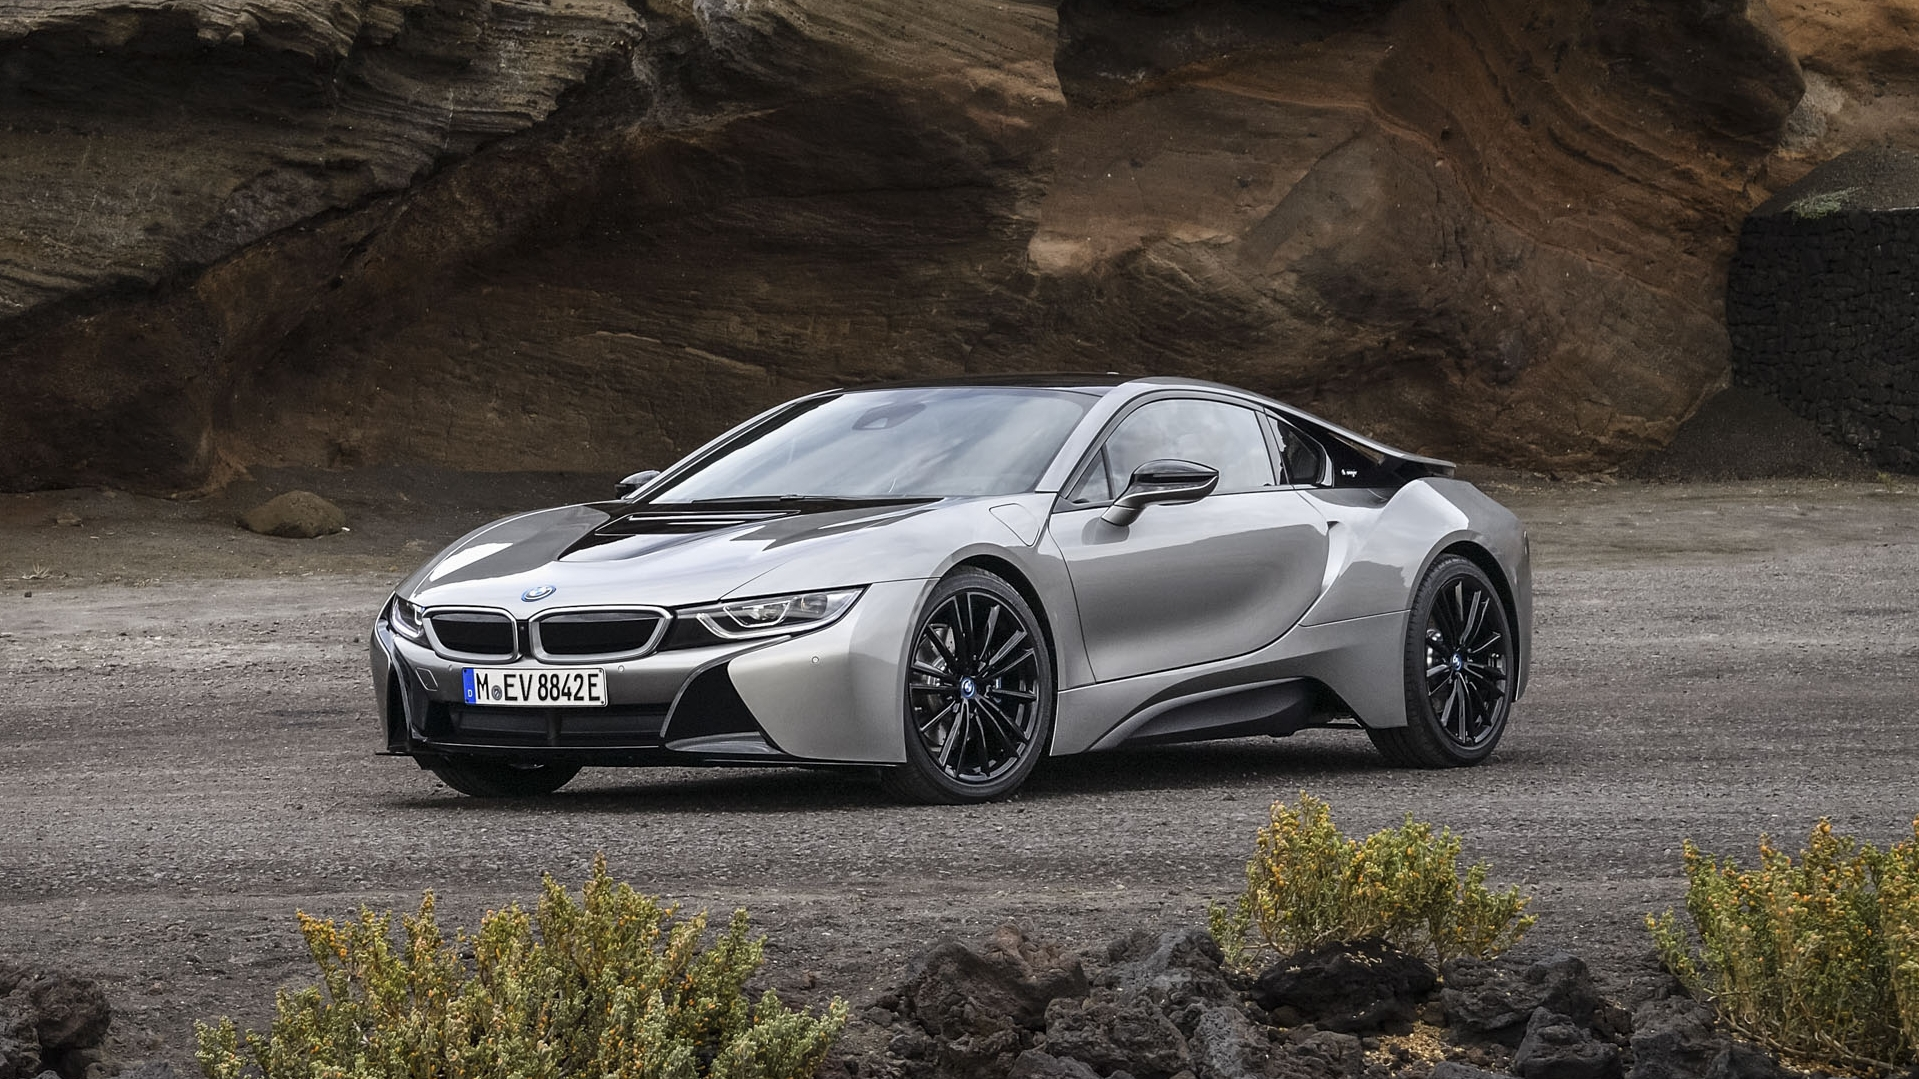 Bmw Is Plotting An I8 Based Hybrid Supercar To Take On The